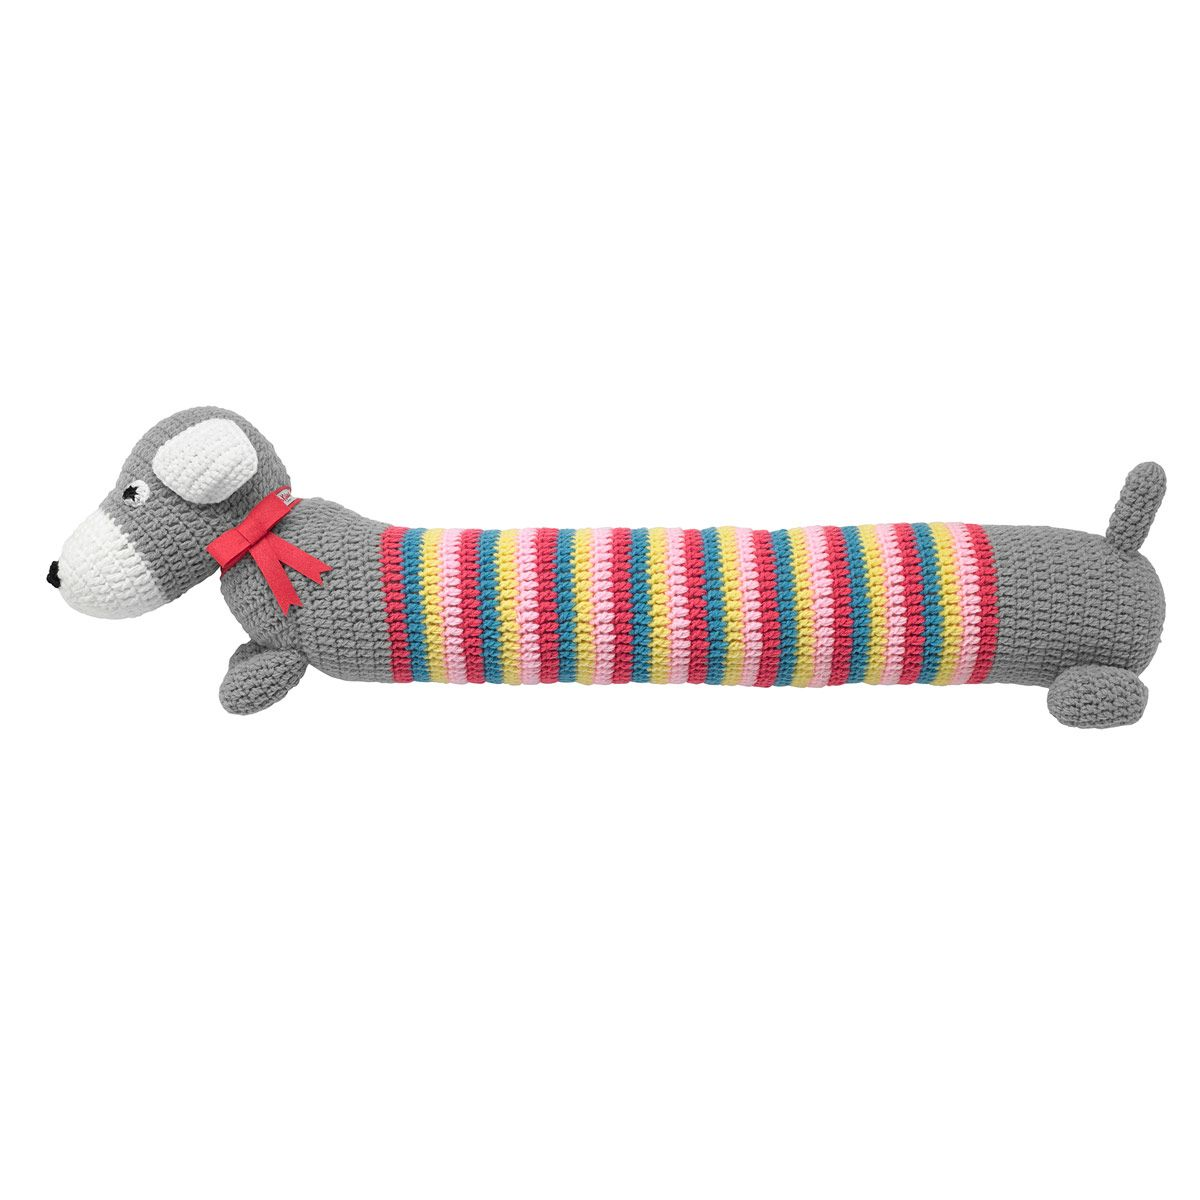 Dog Draft Excluder | Home | CathKidston | Needlework | Cath kidston ...